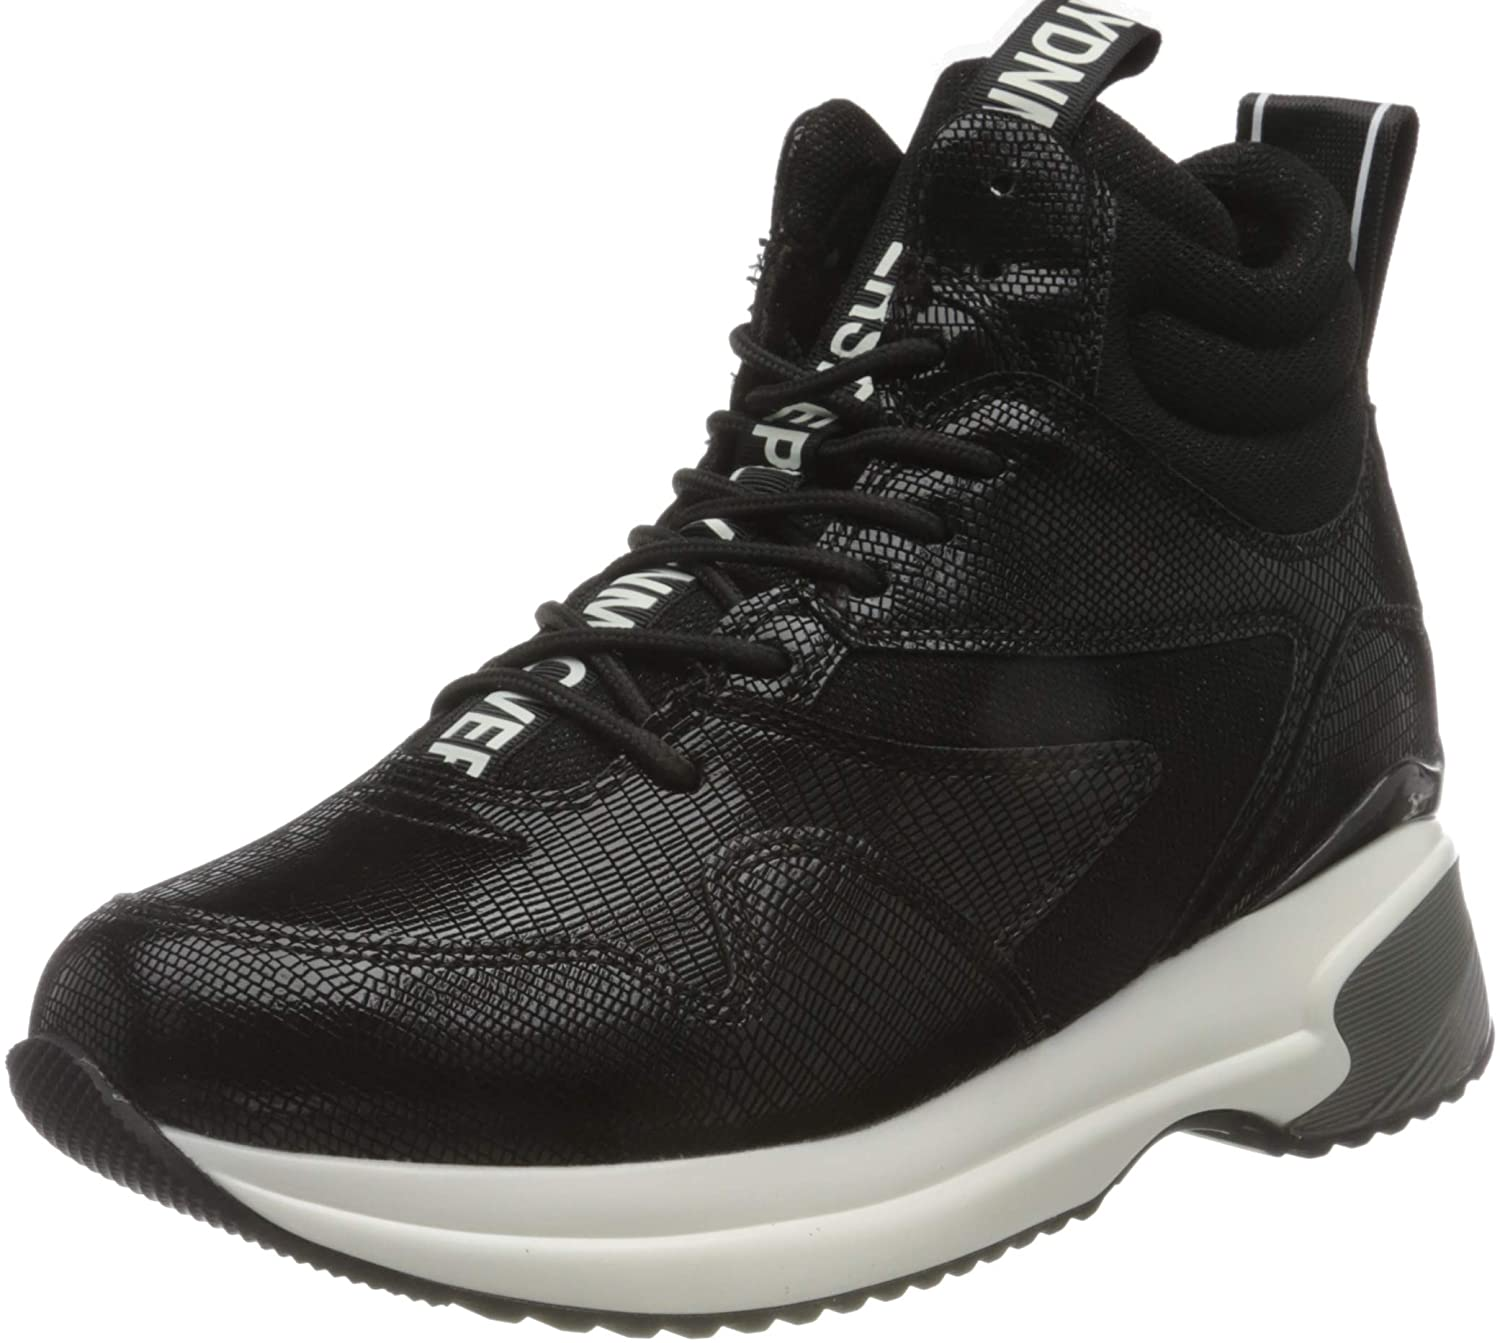 Replay Women's Low-Top Sneakers